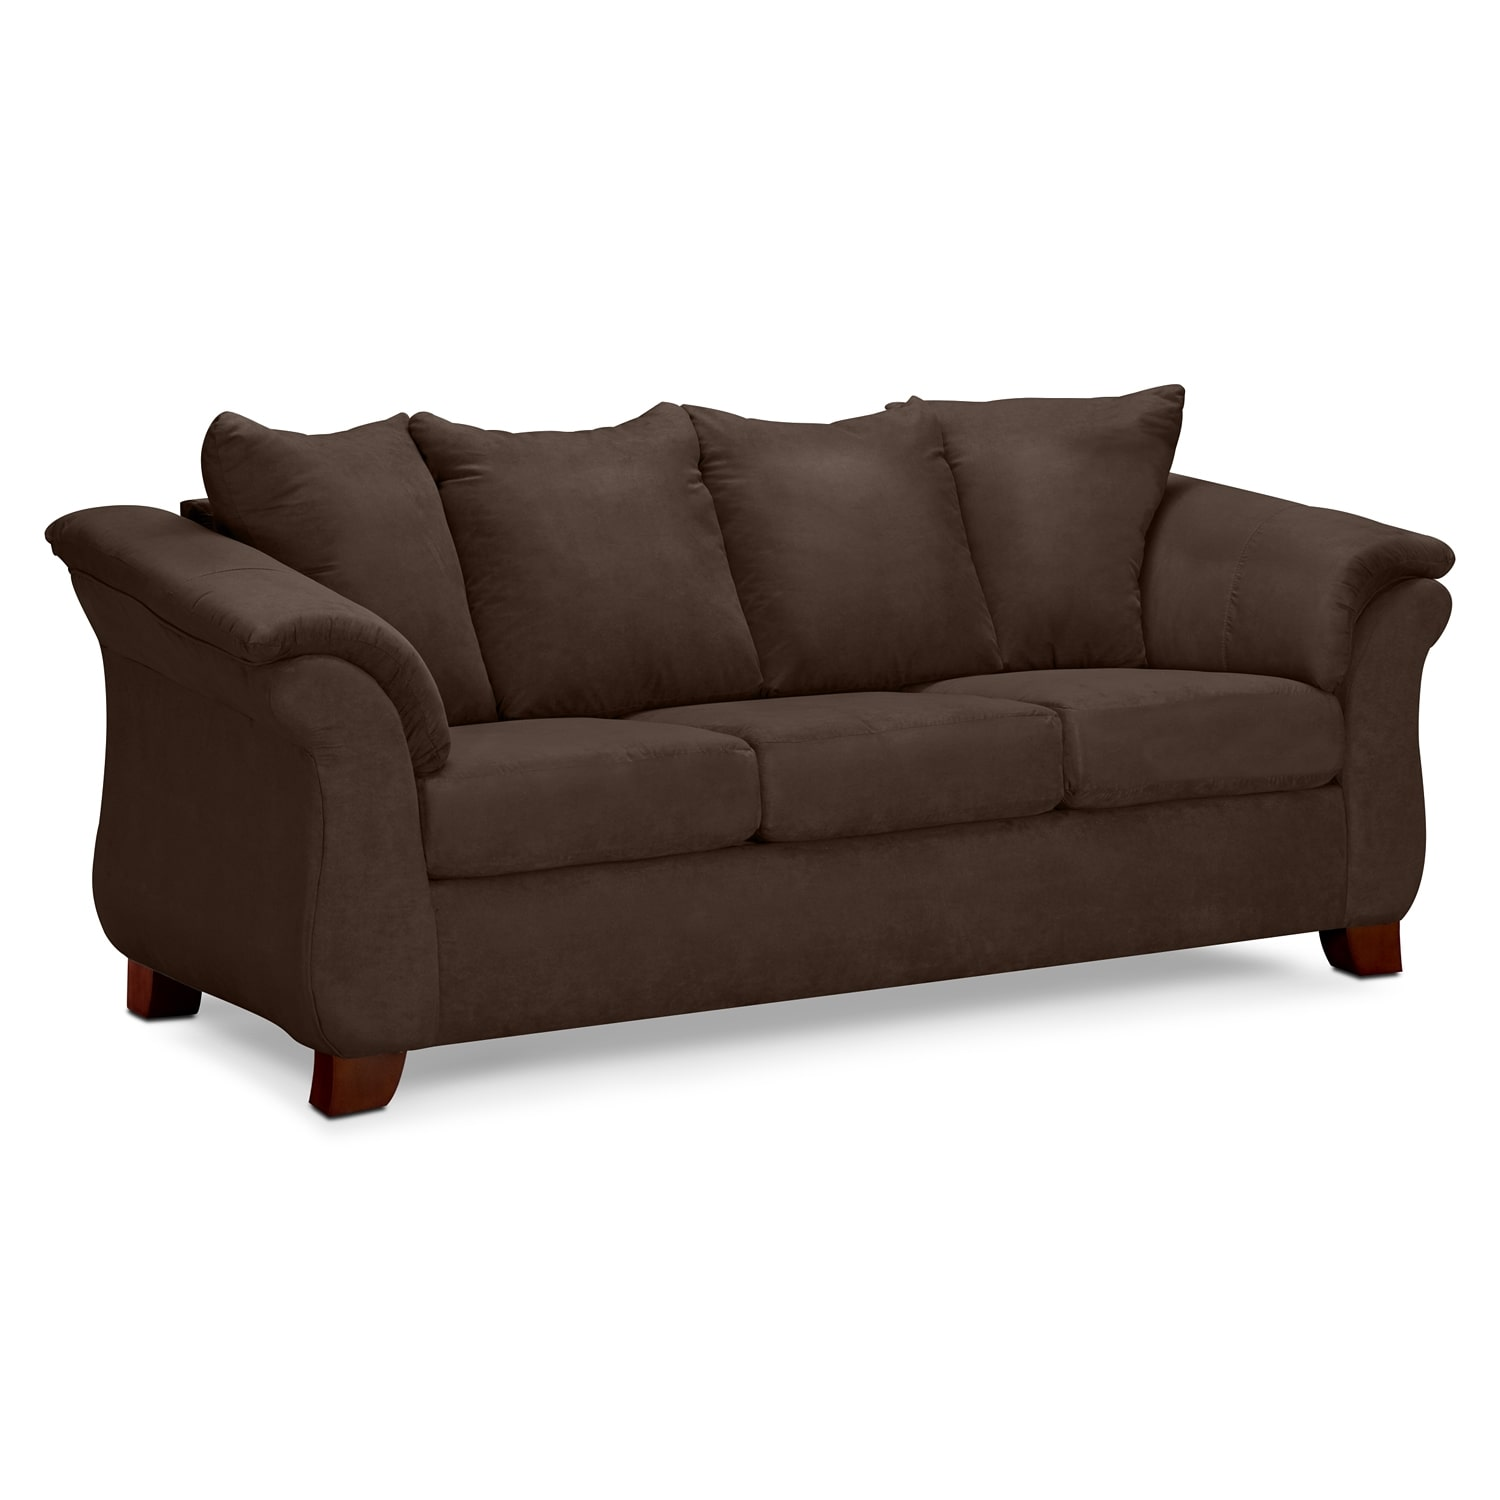 Living Room Furniture - Adrian Chocolate Sofa